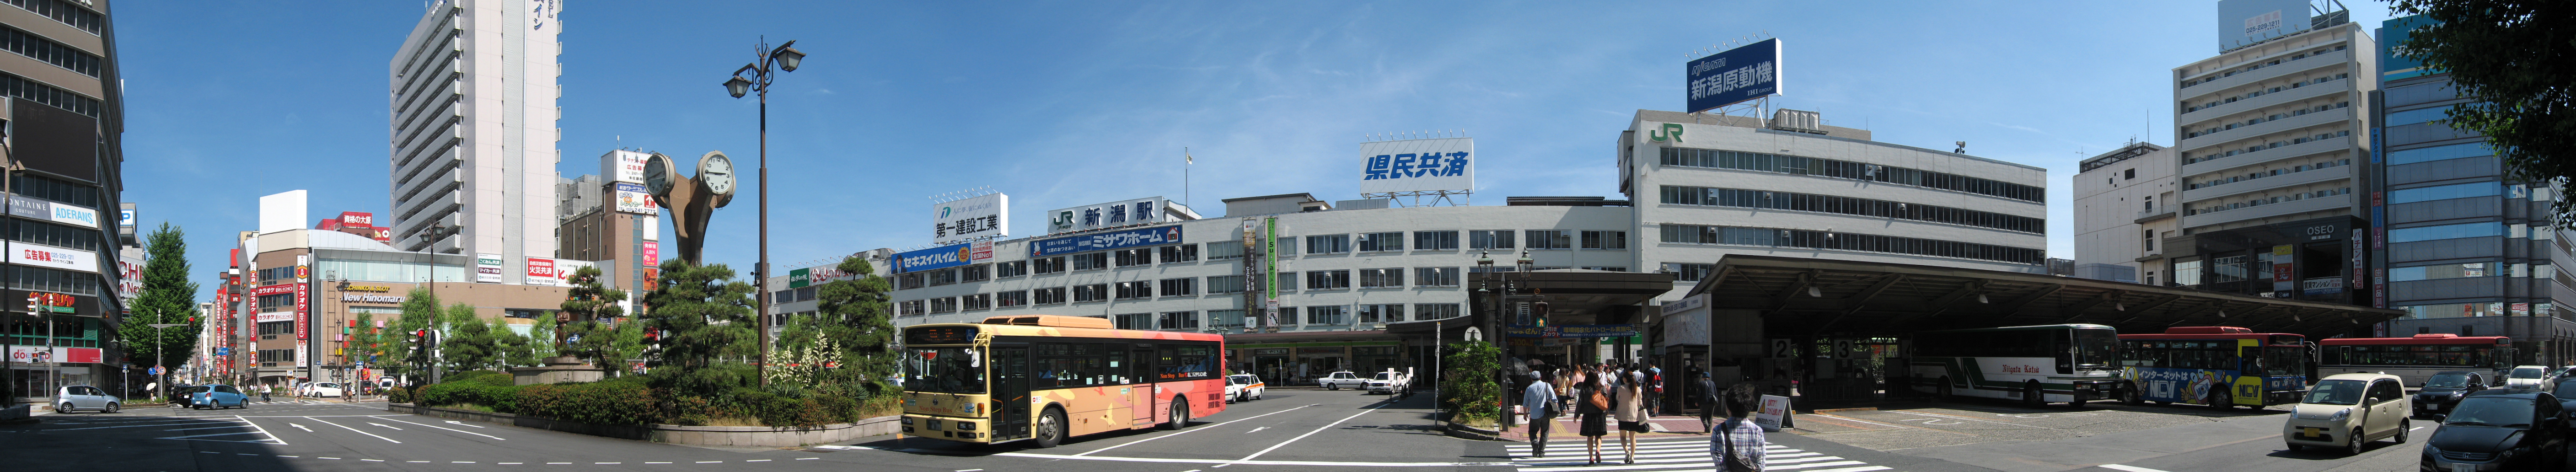 https://upload.wikimedia.org/wikipedia/commons/b/b8/Niigata-Station_Bandai_exit_2013-06-09.jpg